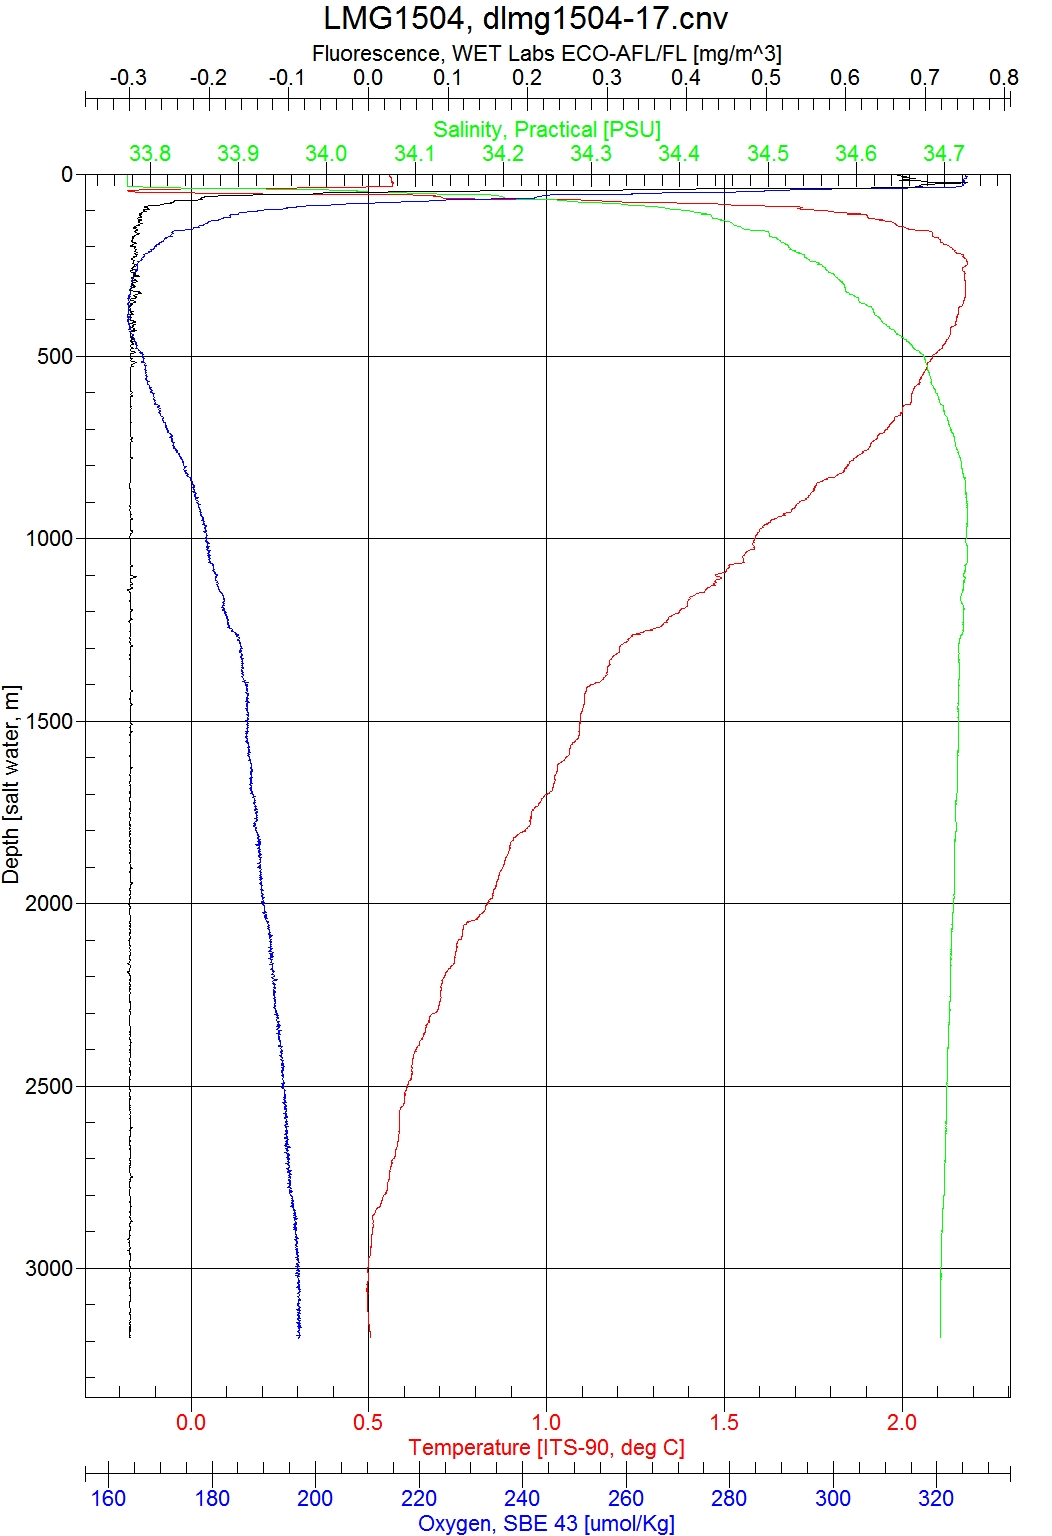 This CTD plot shows how salinity, temperature, oxygen, and fluorescence vary as a function of depth.